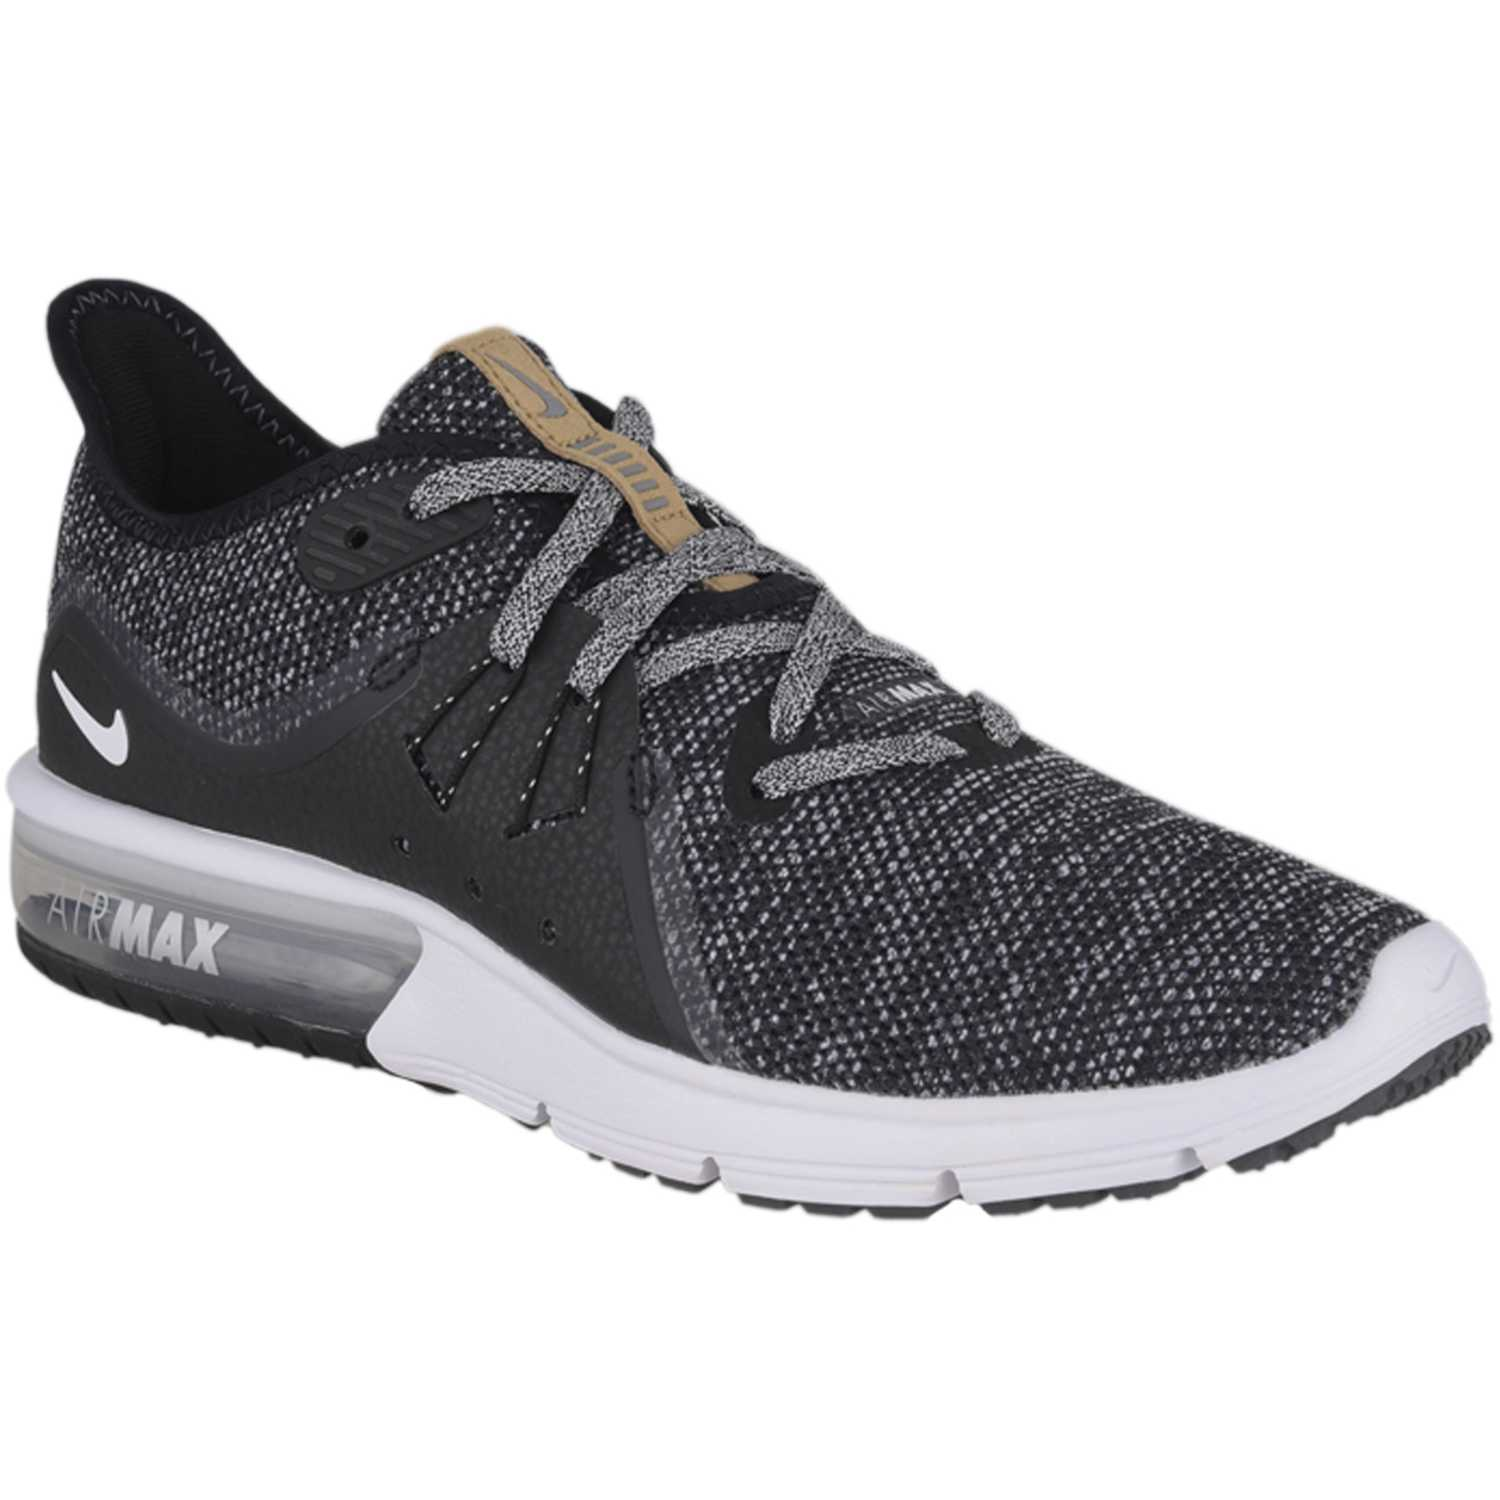 Zapatilla de Mujer Nike Grafito wmns nike sequent air max sequent nike 256382